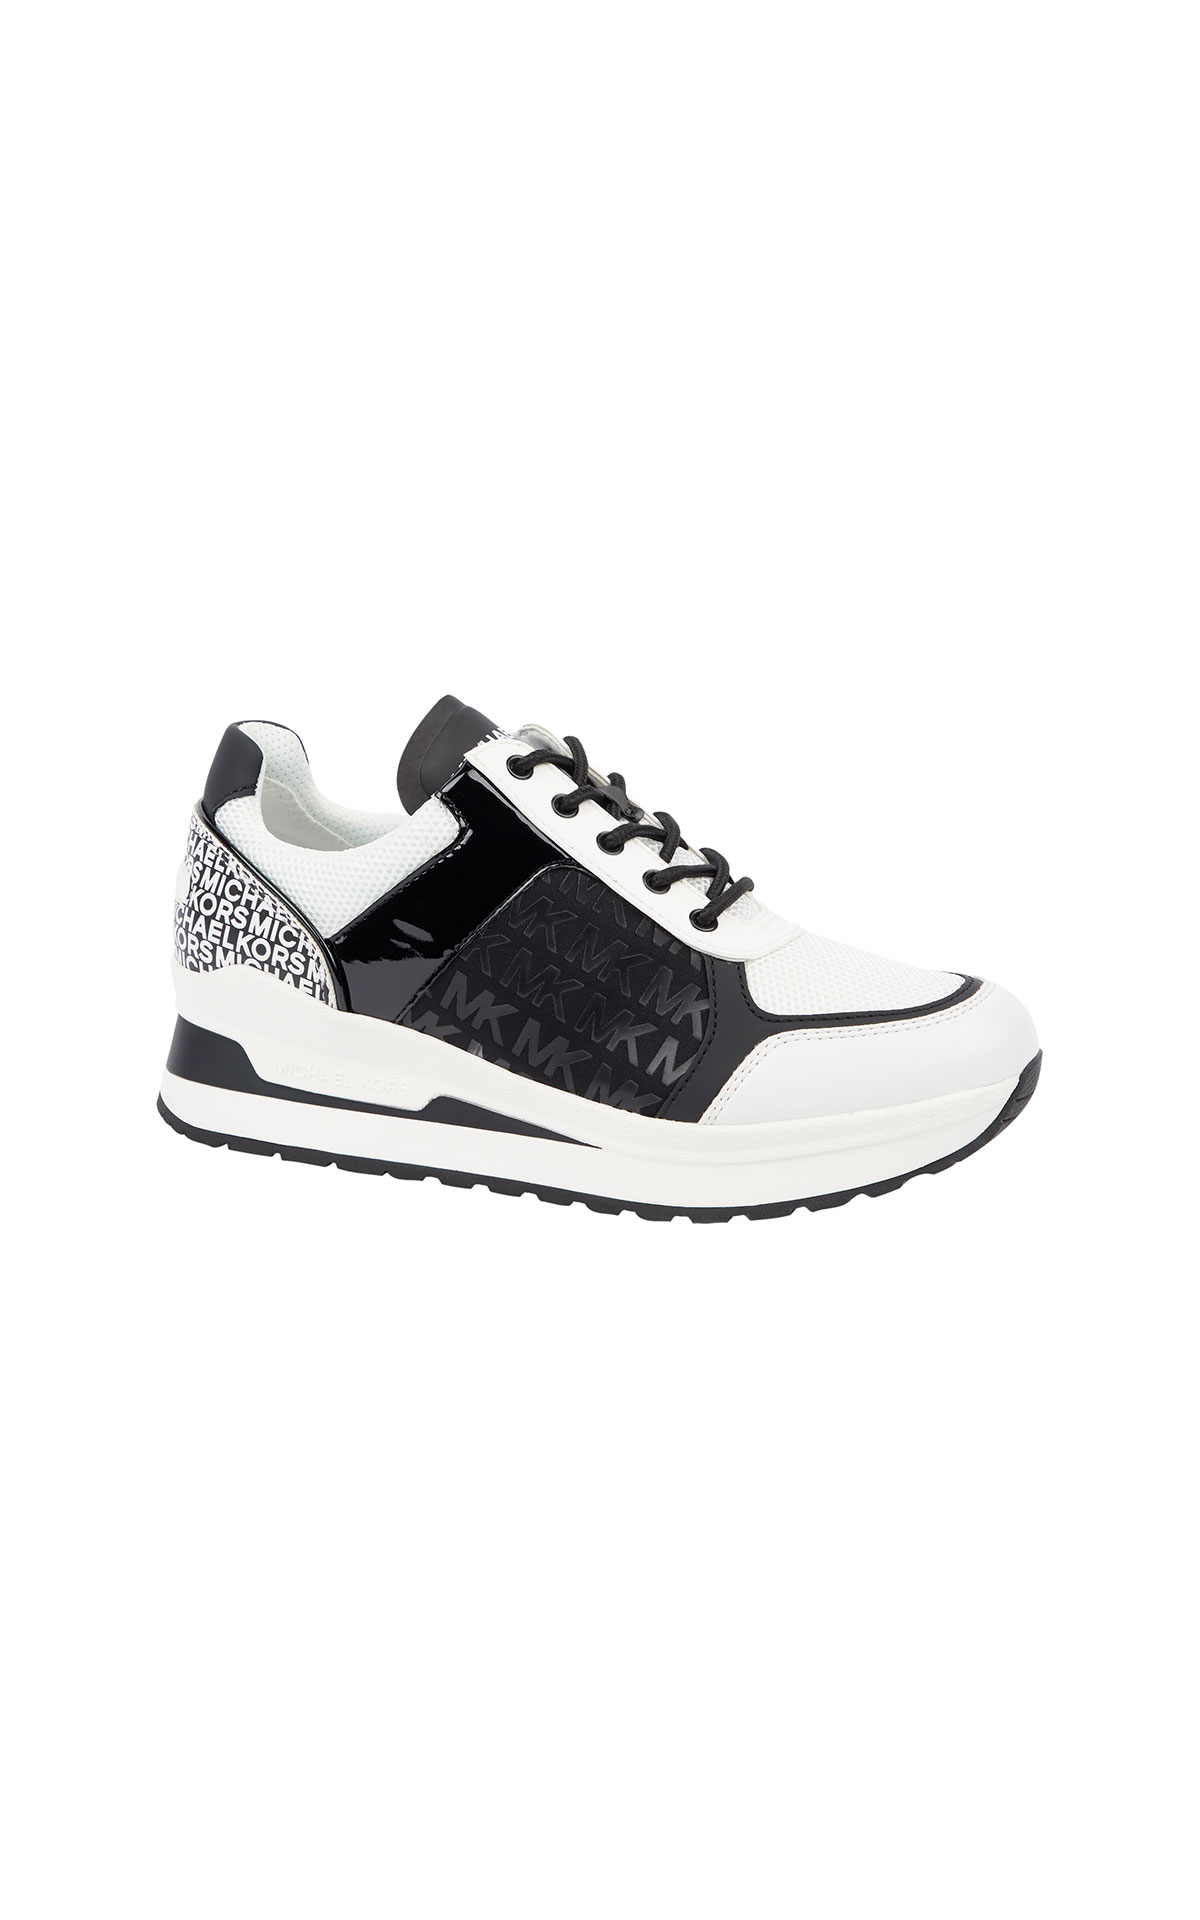 Michael Kors Lindy trainer at The Bicester Village Shopping Collection